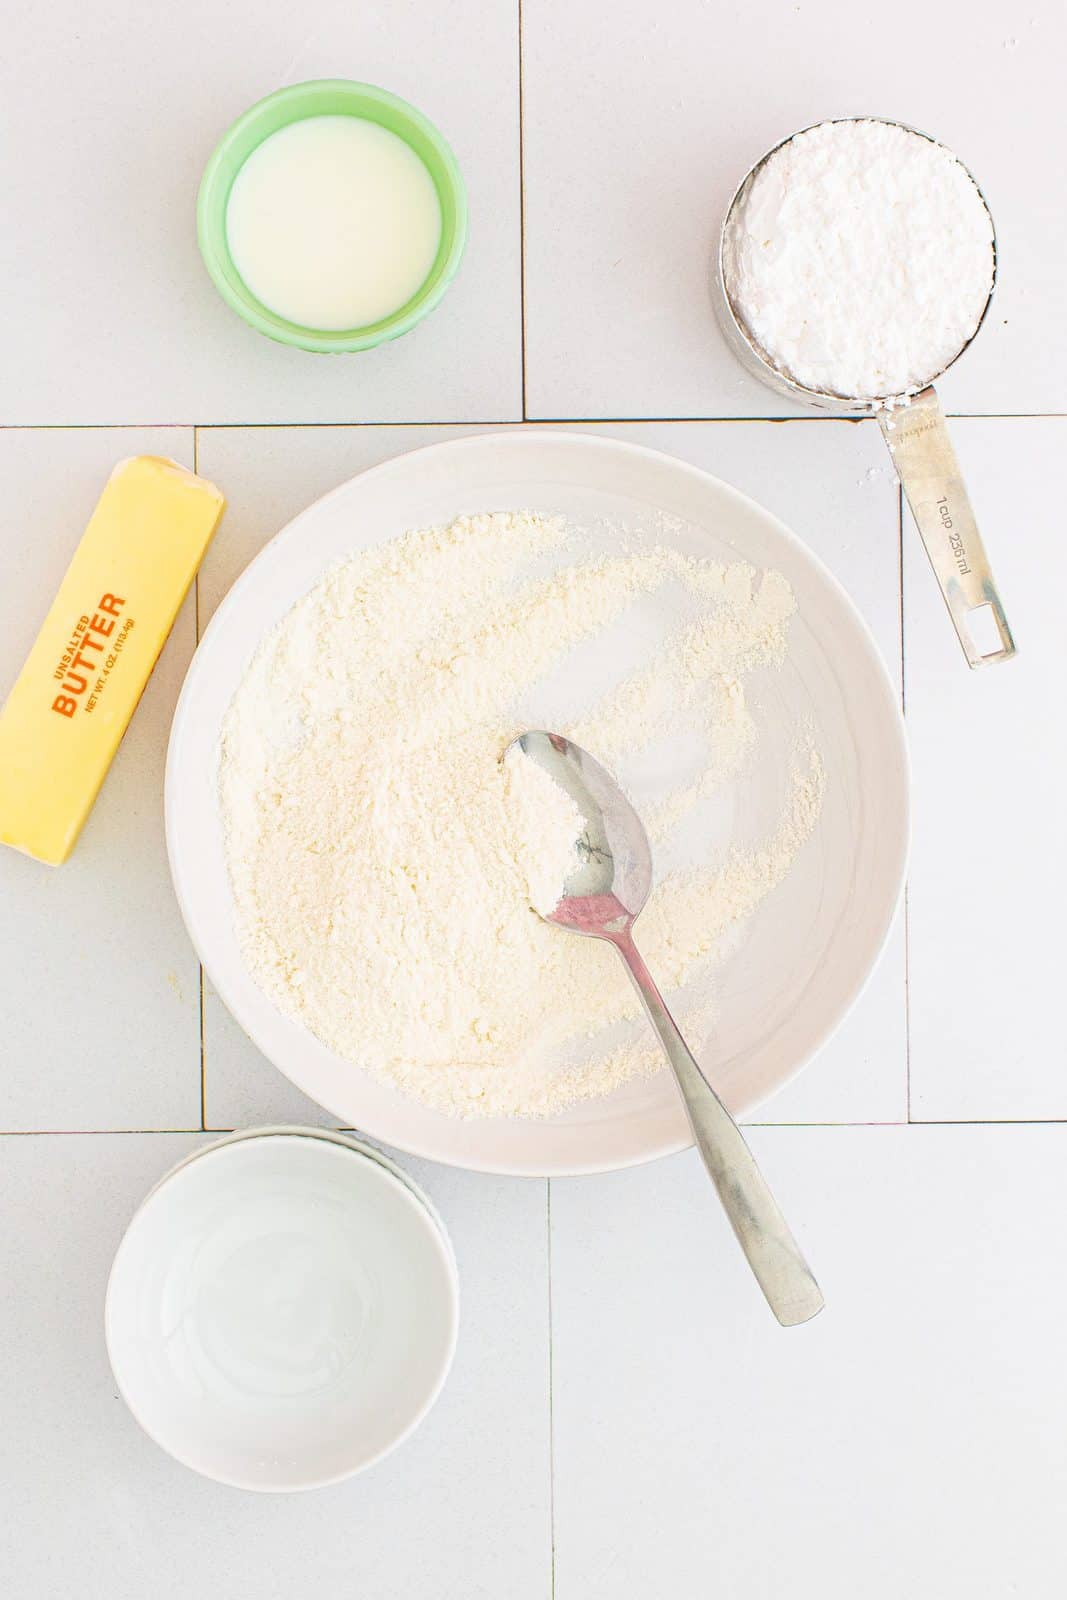 Sugar and flour mixed together in bowl.